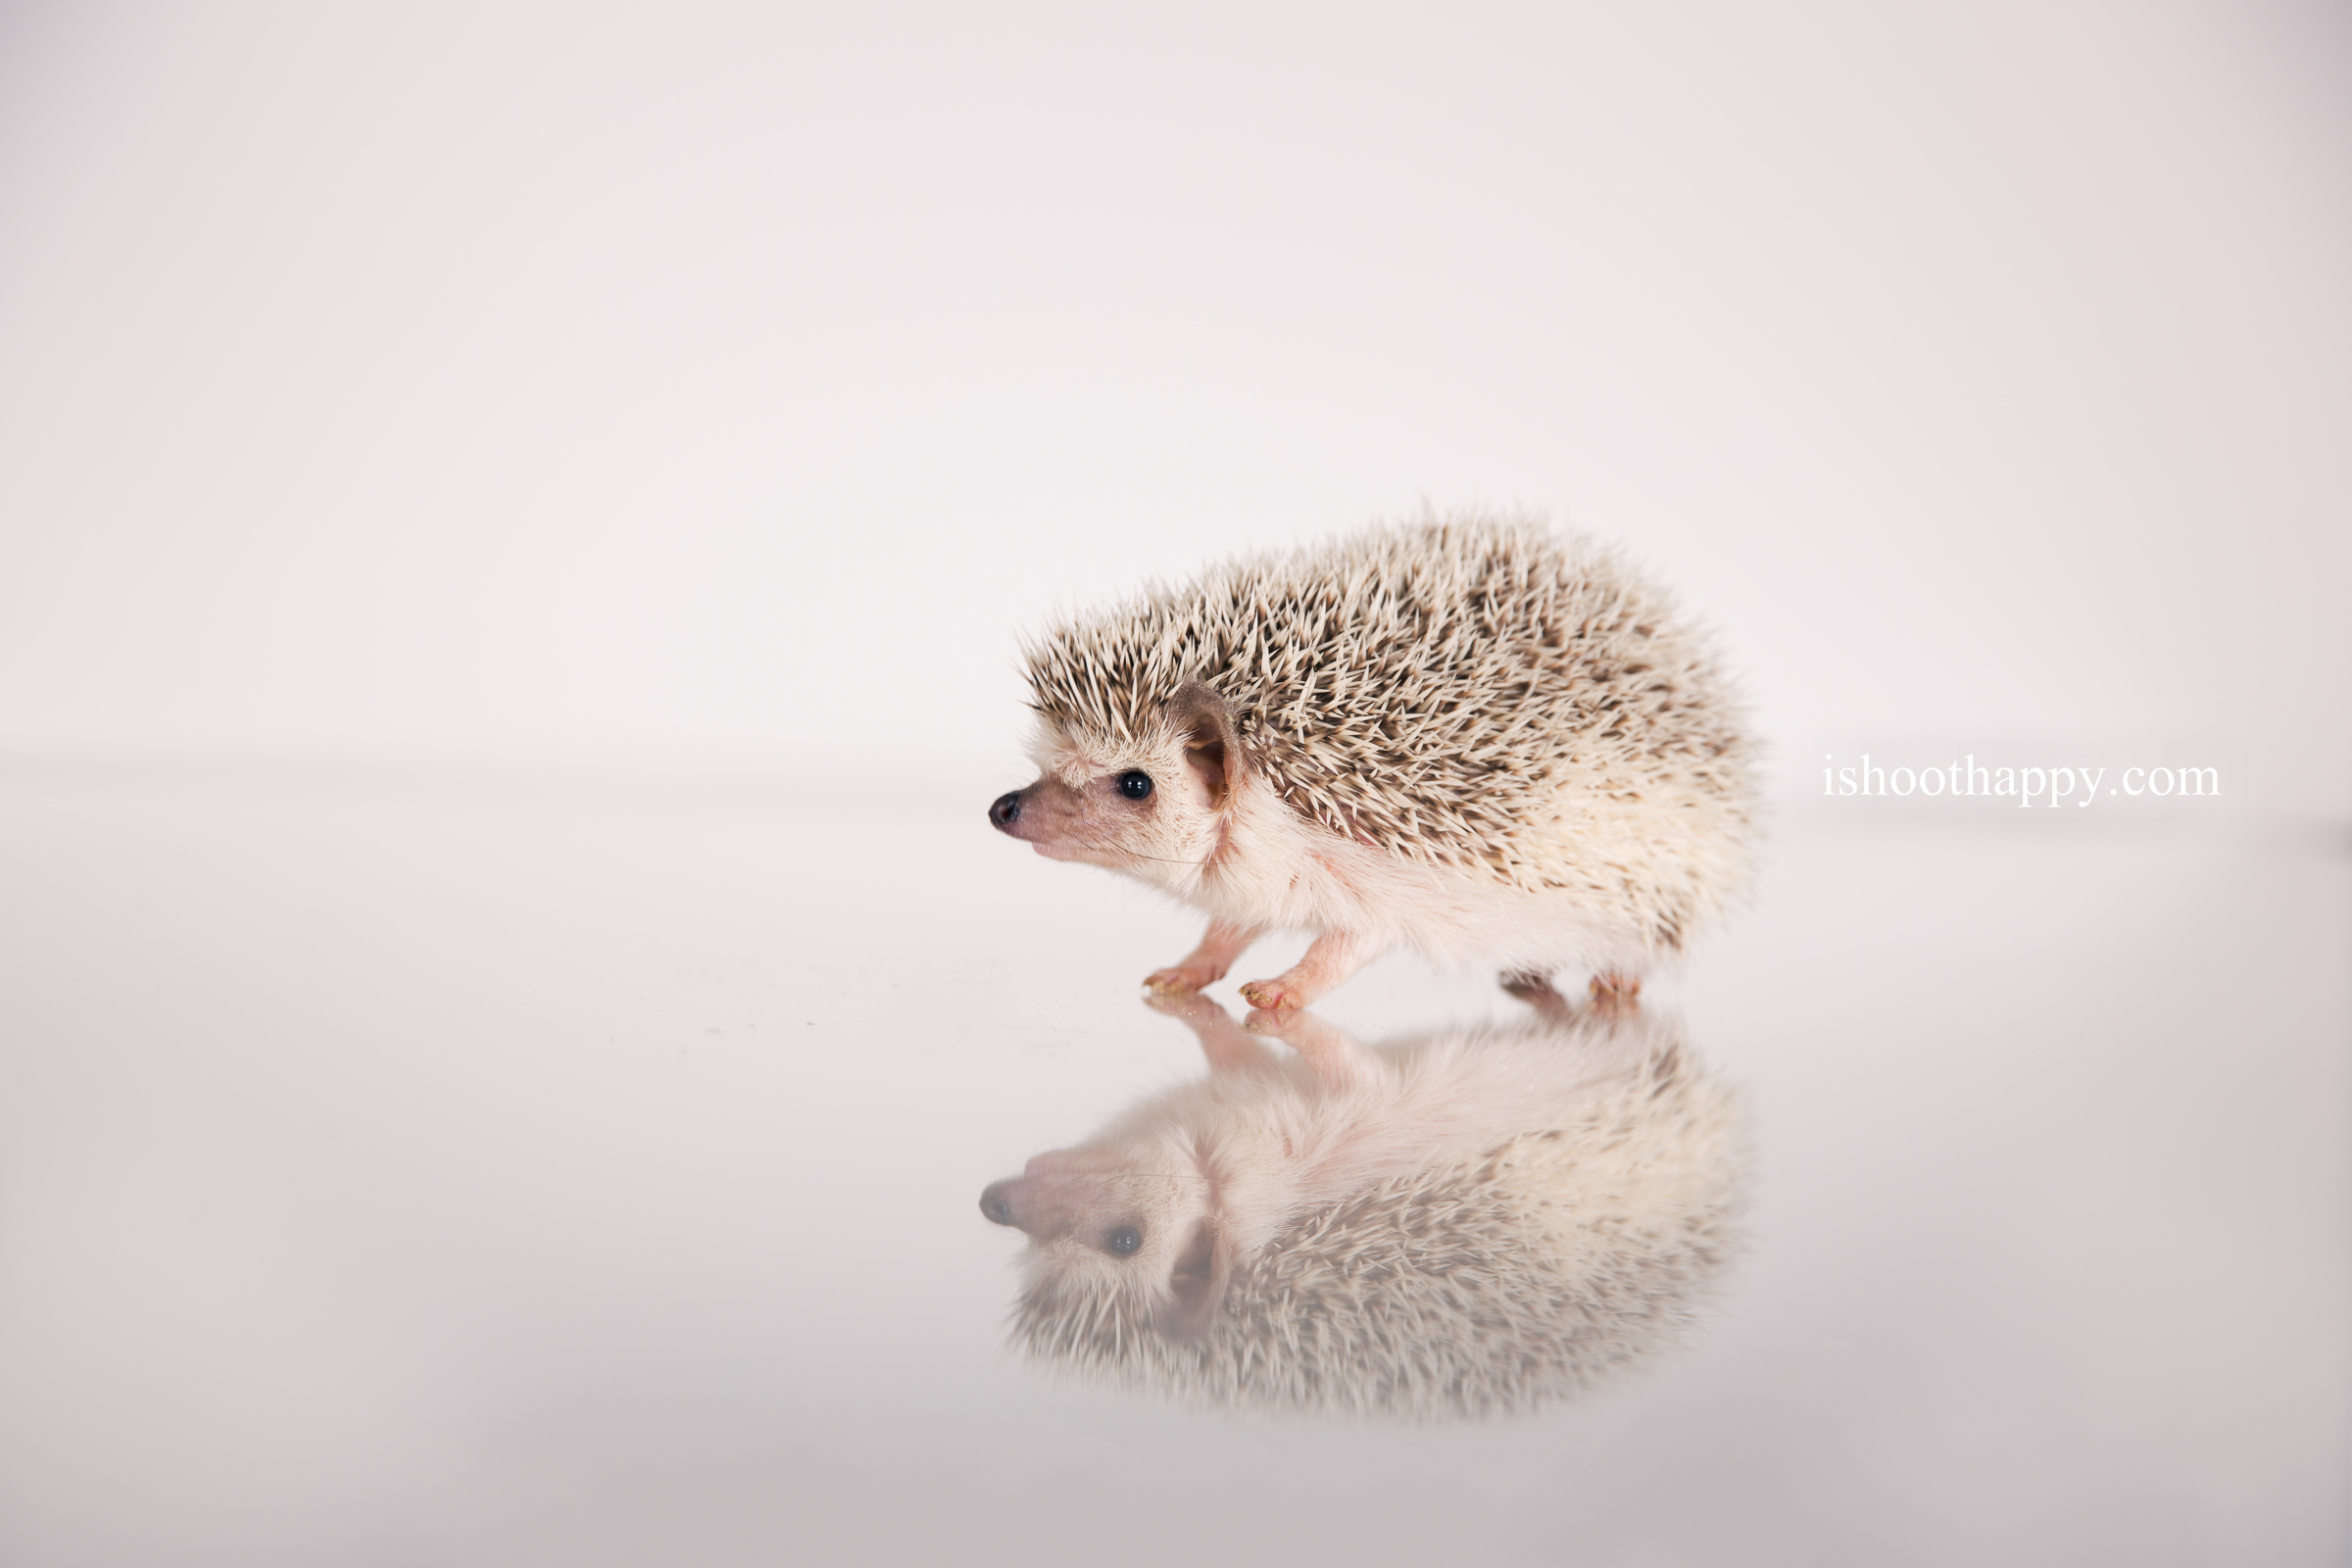 Denver Pet Photography, Denver Pet Photographer, Pet Photo, Hedgehog, Cute pet Photos, Cute Pet Photography, Pet Photographer Denver